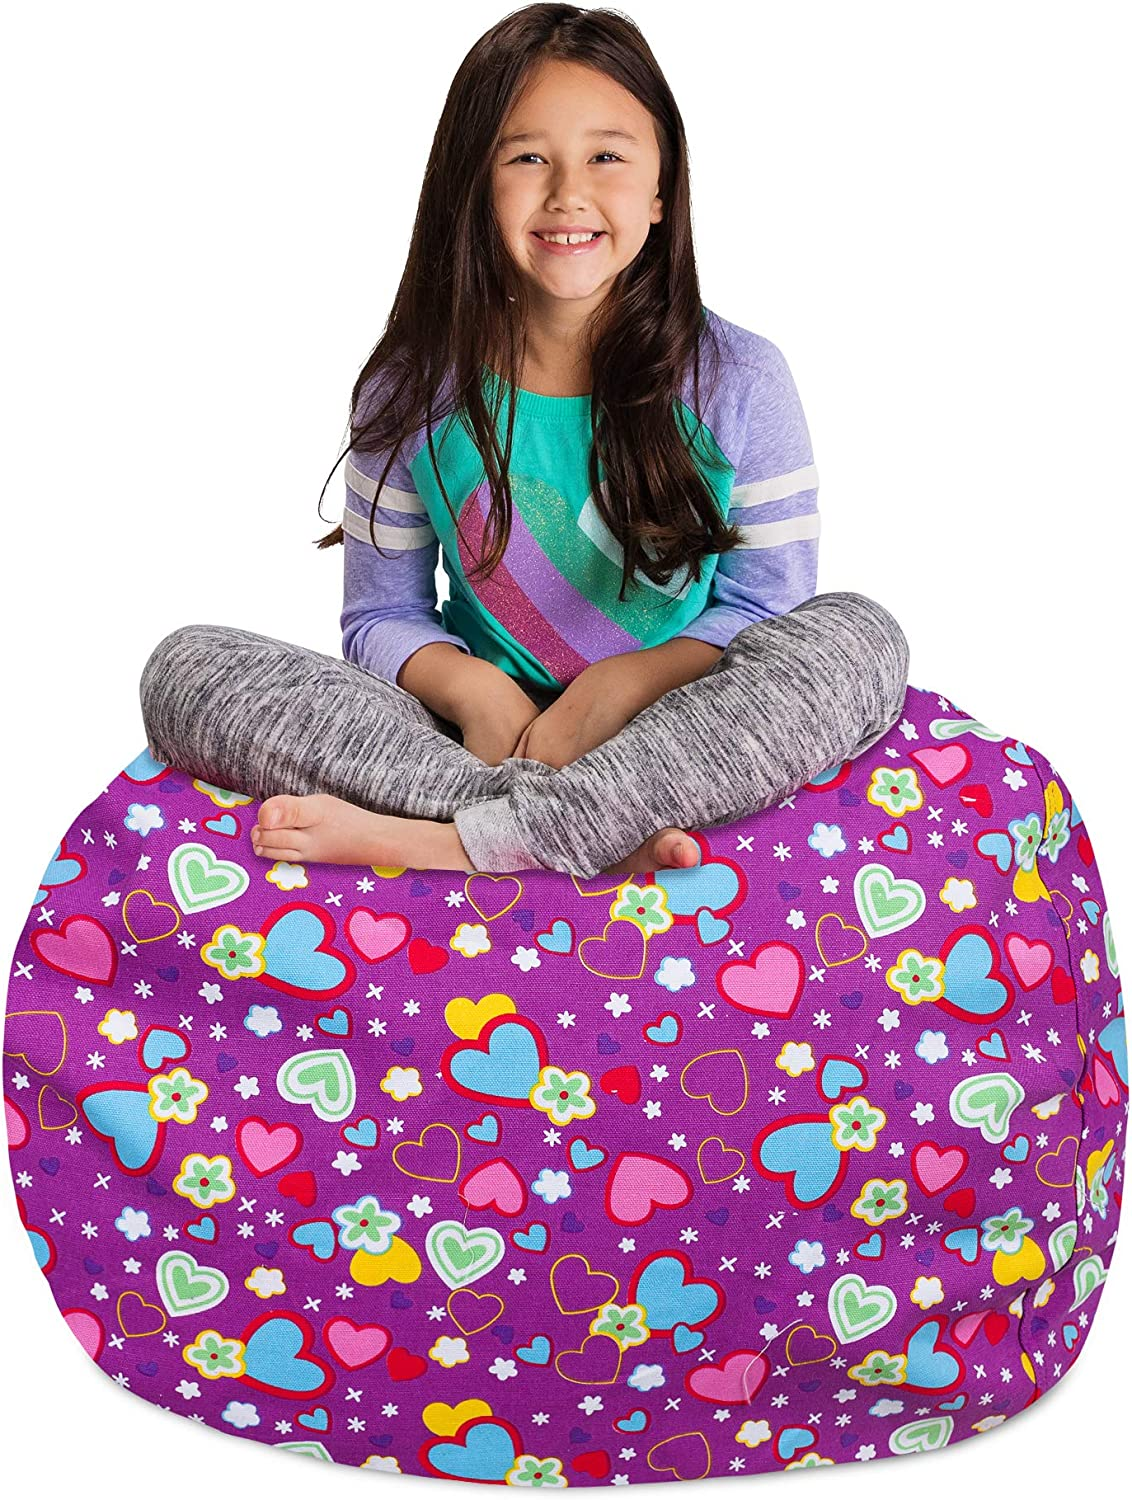 "Posh Stuffable Kids Stuffed Animal Storage Bean Bag Chair Cover - Childrens Toy Organizer, Large-38"" - Canvas Multi-Colored Hearts on Purple"